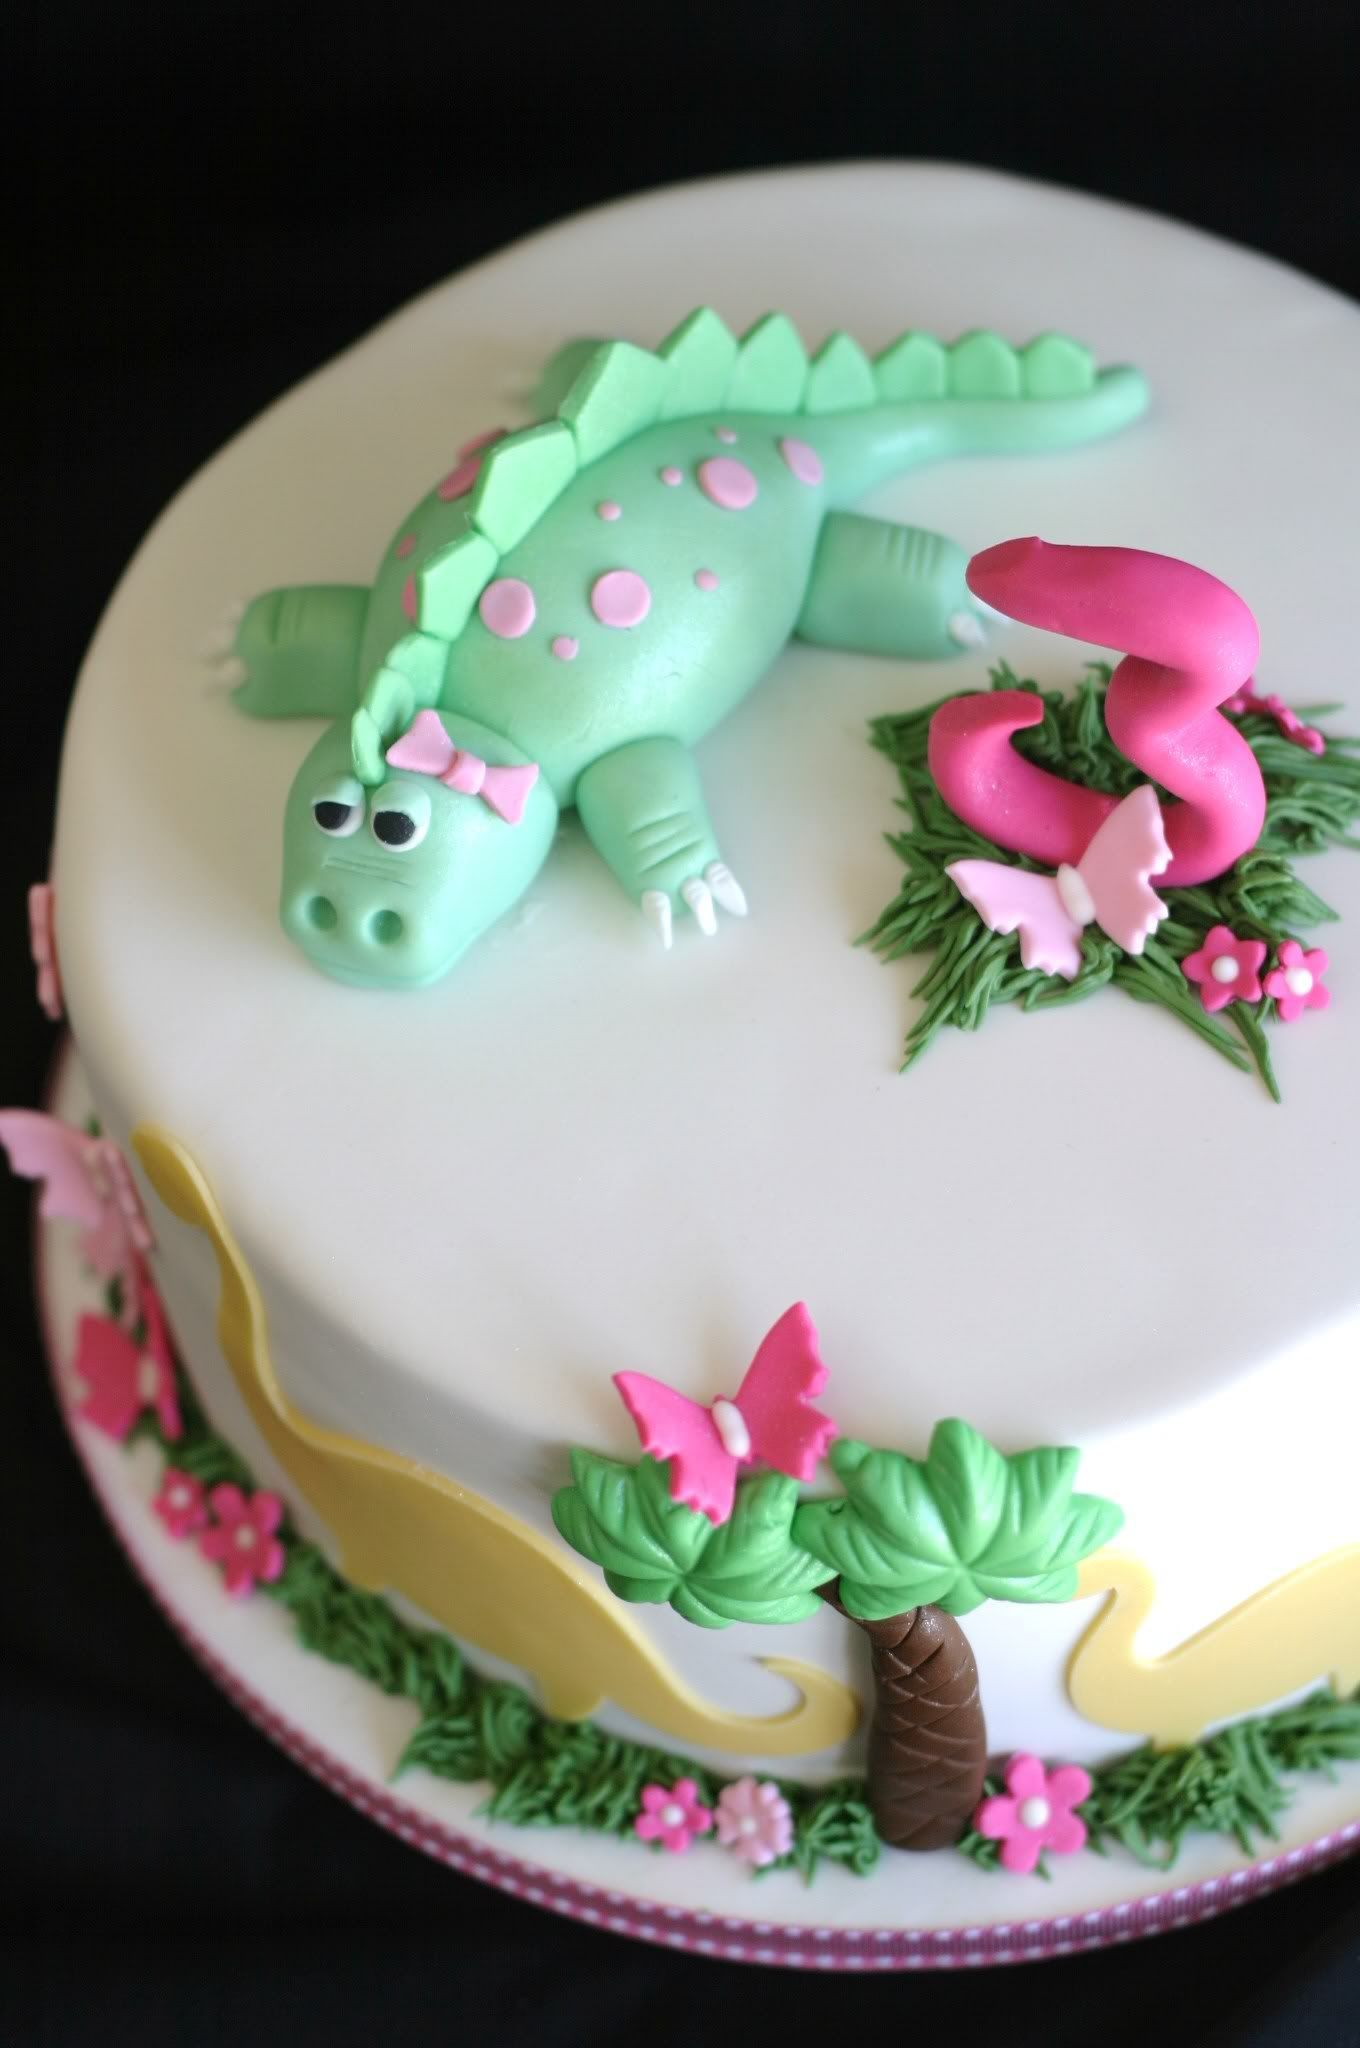 3rd Birthday Cake Ideas She Is Obsessed With Dinosaurs